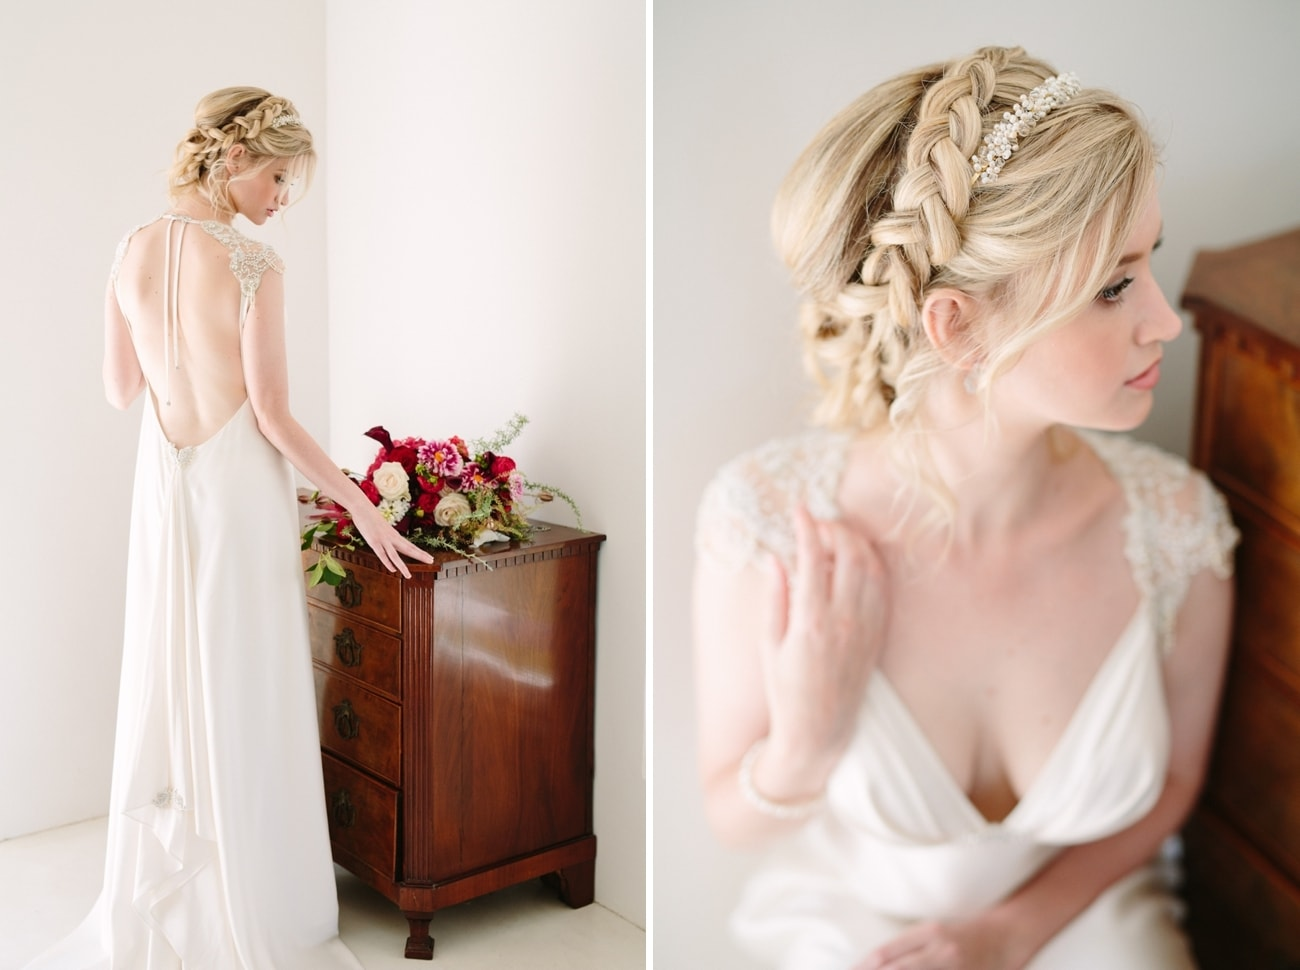 Bridal Braid | Image: Tasha Seccombe